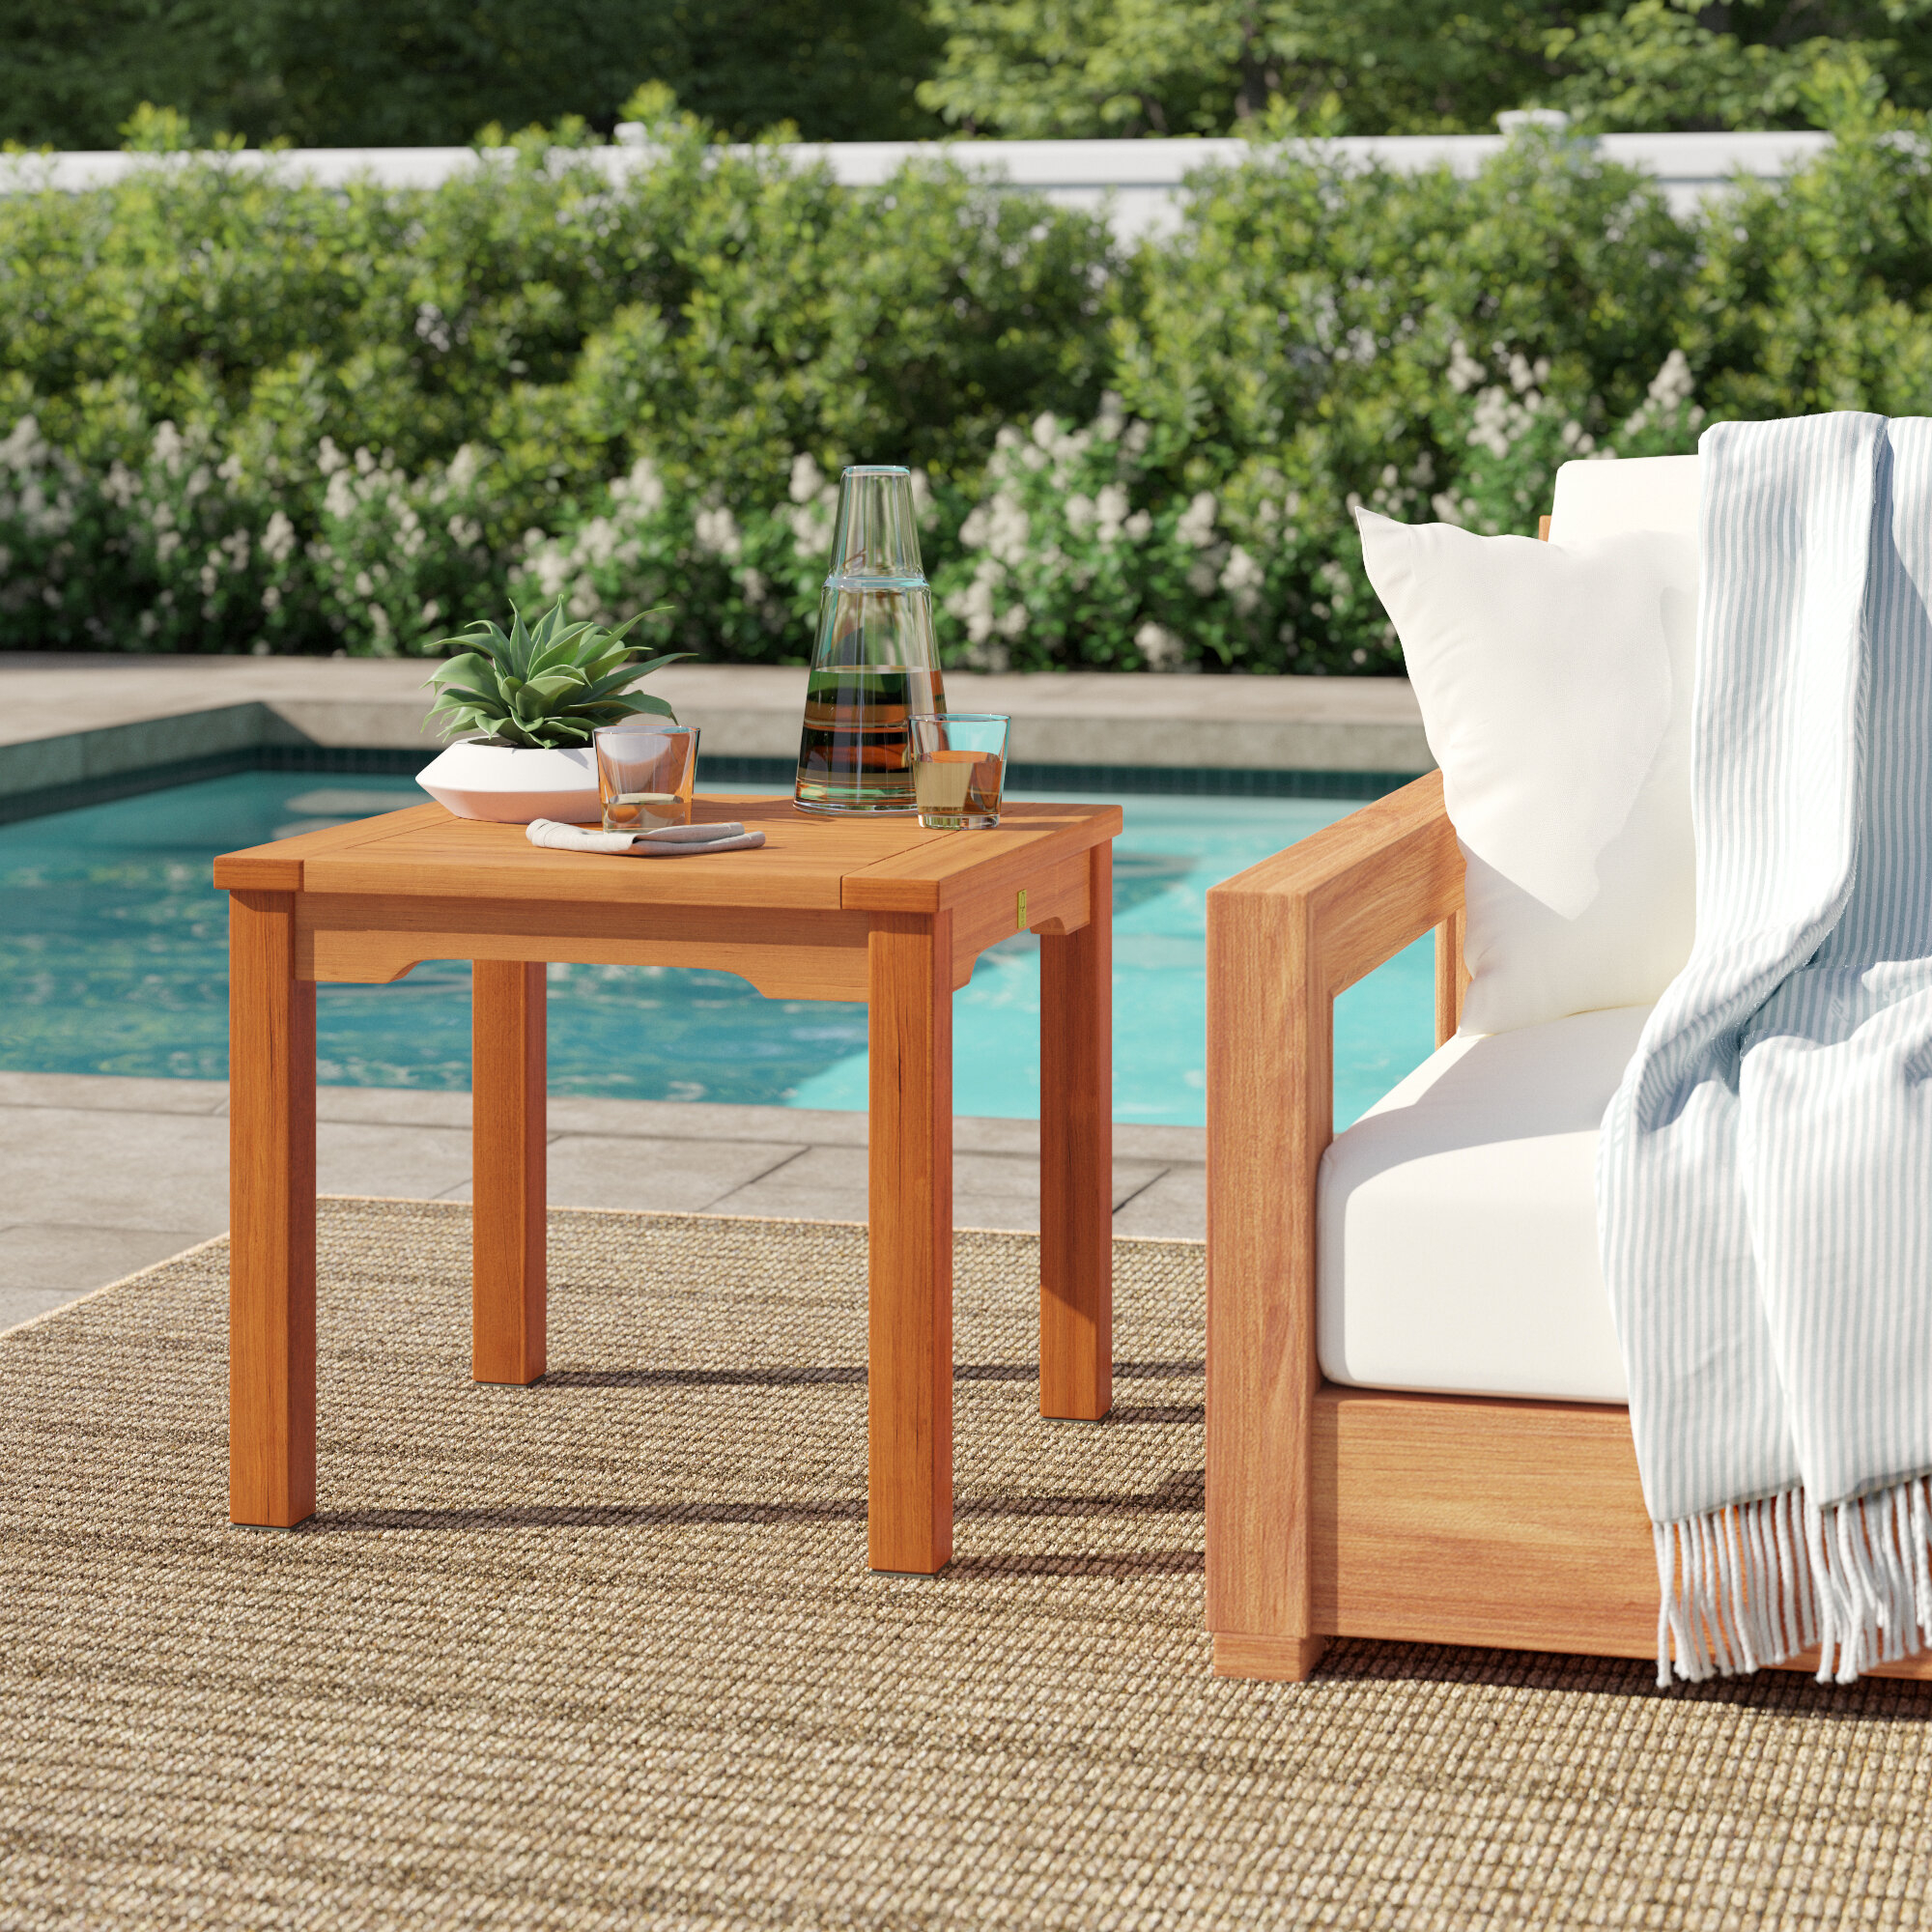 Jeff Solid Wood Side Table Within Harpersfield Wooden Garden Benches (View 16 of 25)